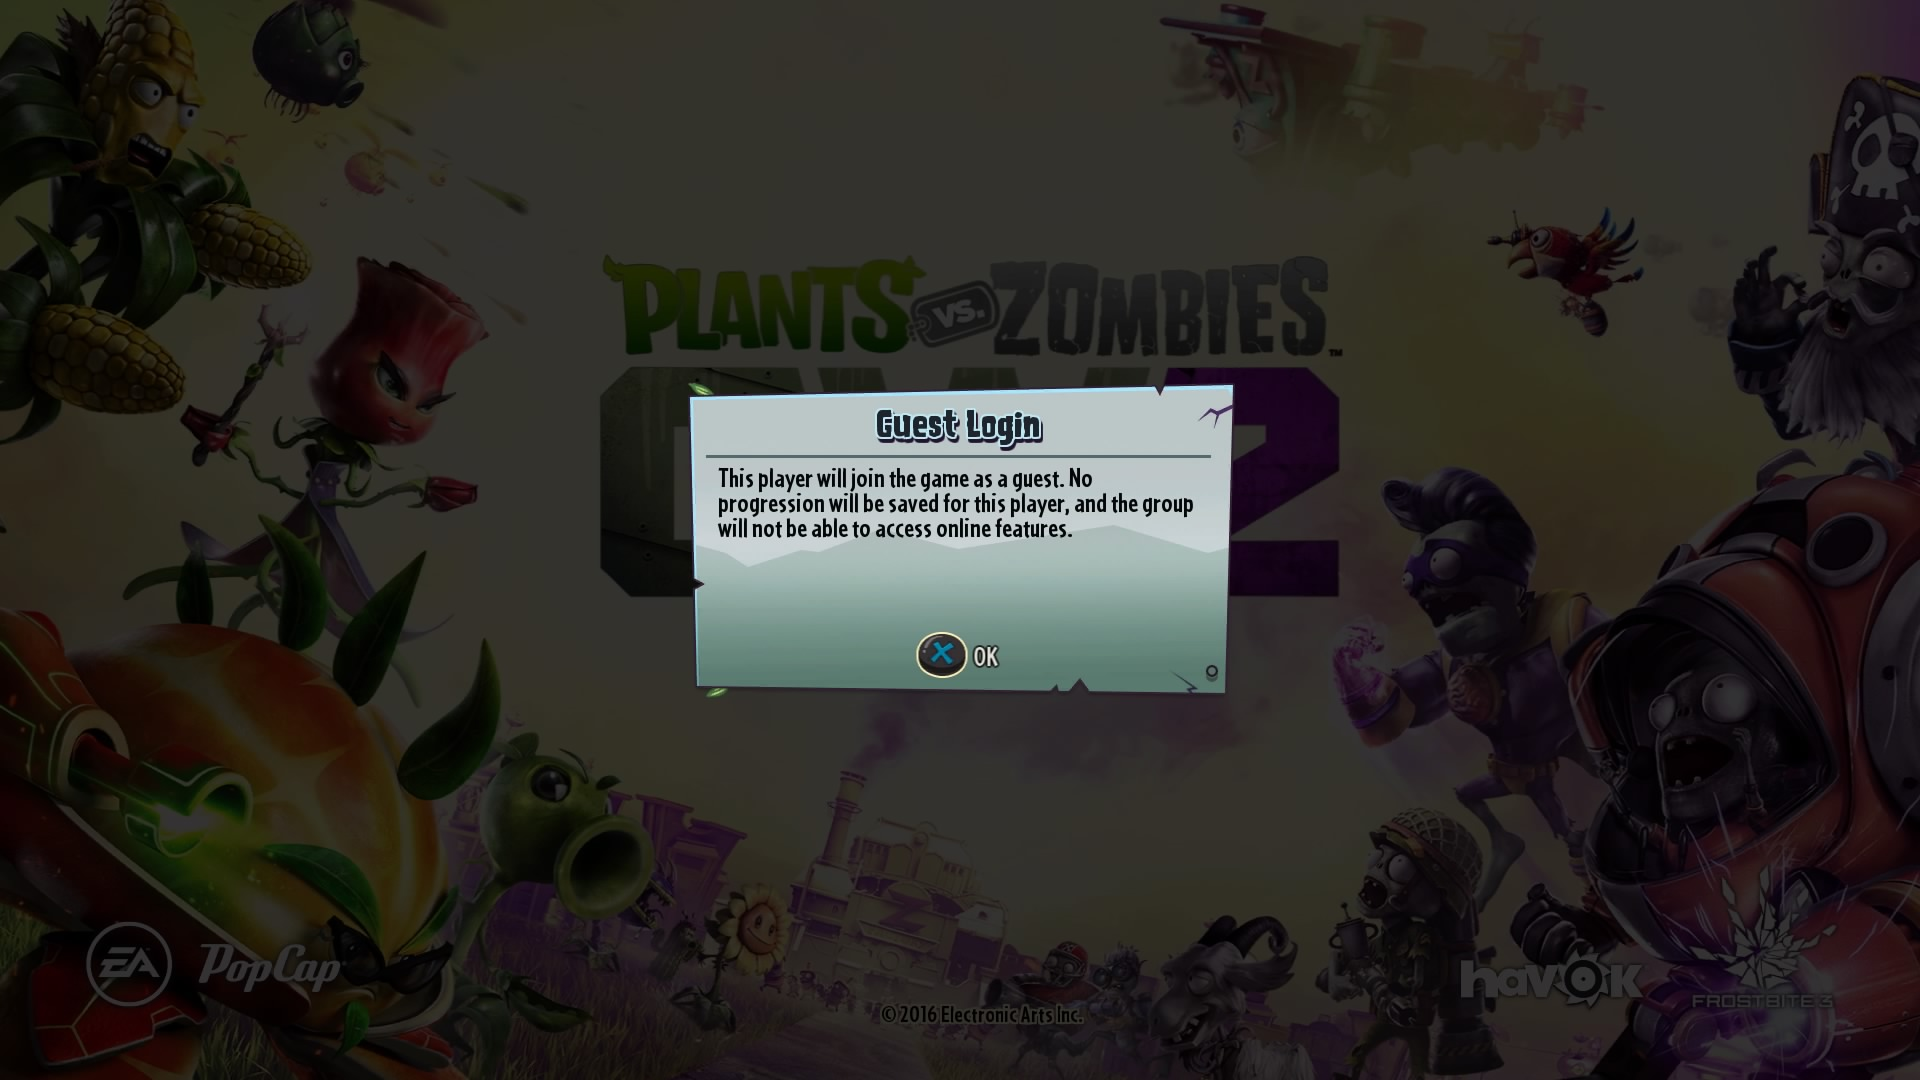 Co-Optimus - News - Plants vs Zombies: Garden Warfare 2 Co